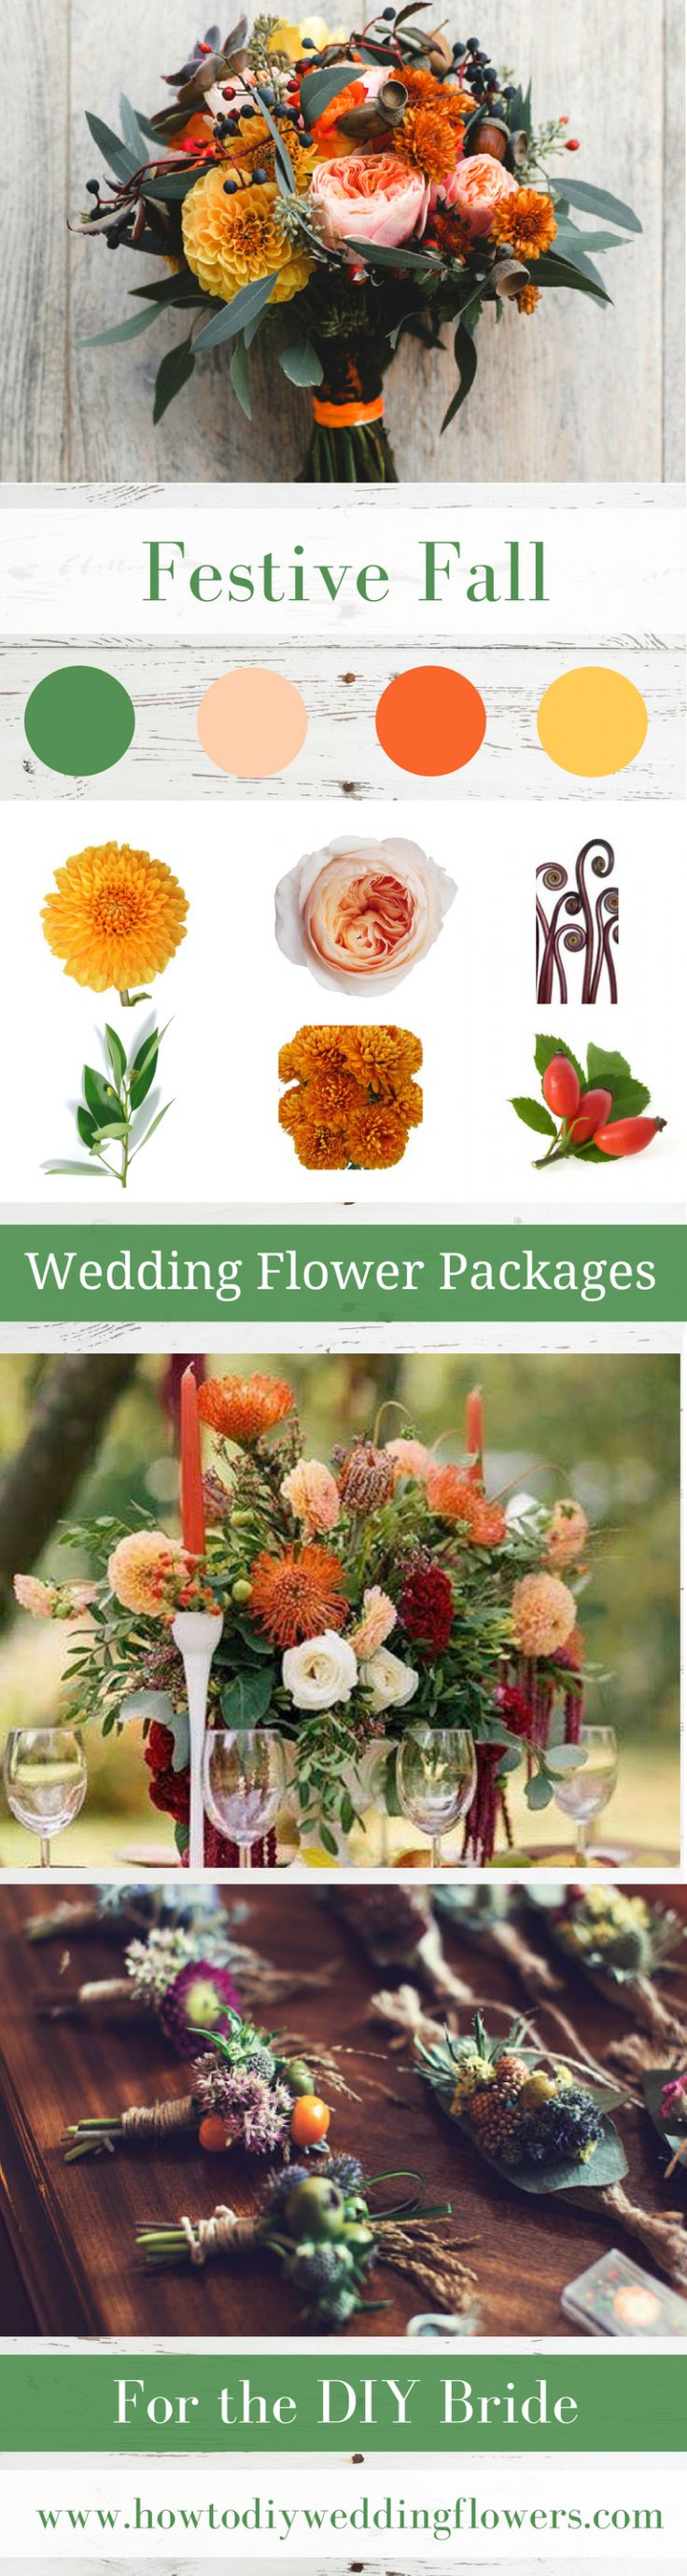 Wedding trends Fall Flower Packages trend Buy DIY Wedding Flowers Package online wholesale cost amaranthus rose crown 2018 #fallweddingflowers #fallweddingideas #fallwedding